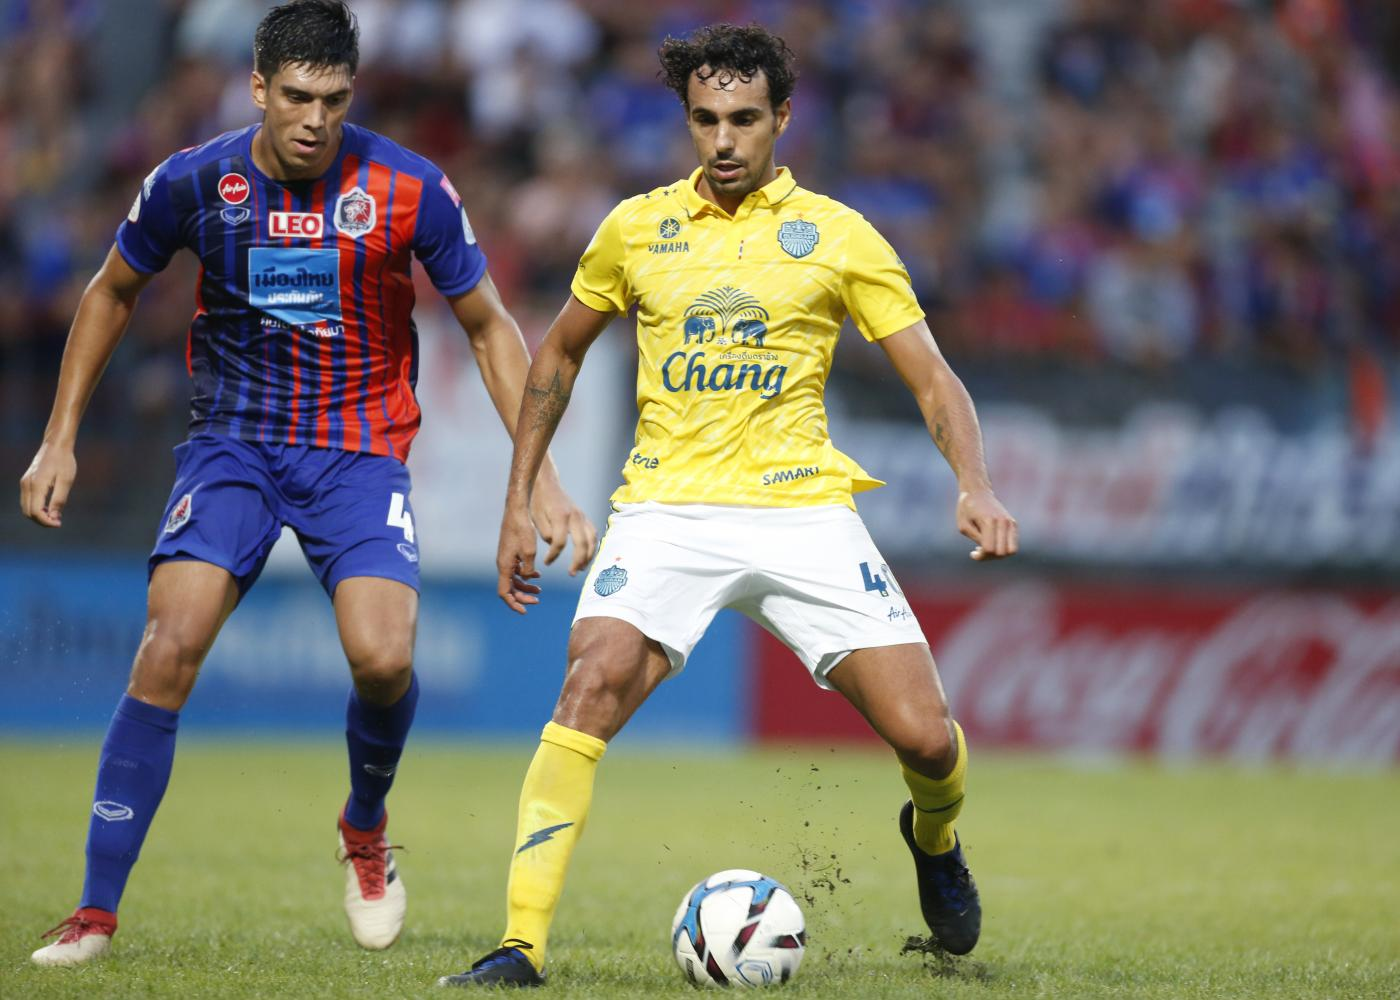 Diogo Luis Santo (right) during his spell with Buriram United. (Photo by Pattarapong Chatpattarasill)